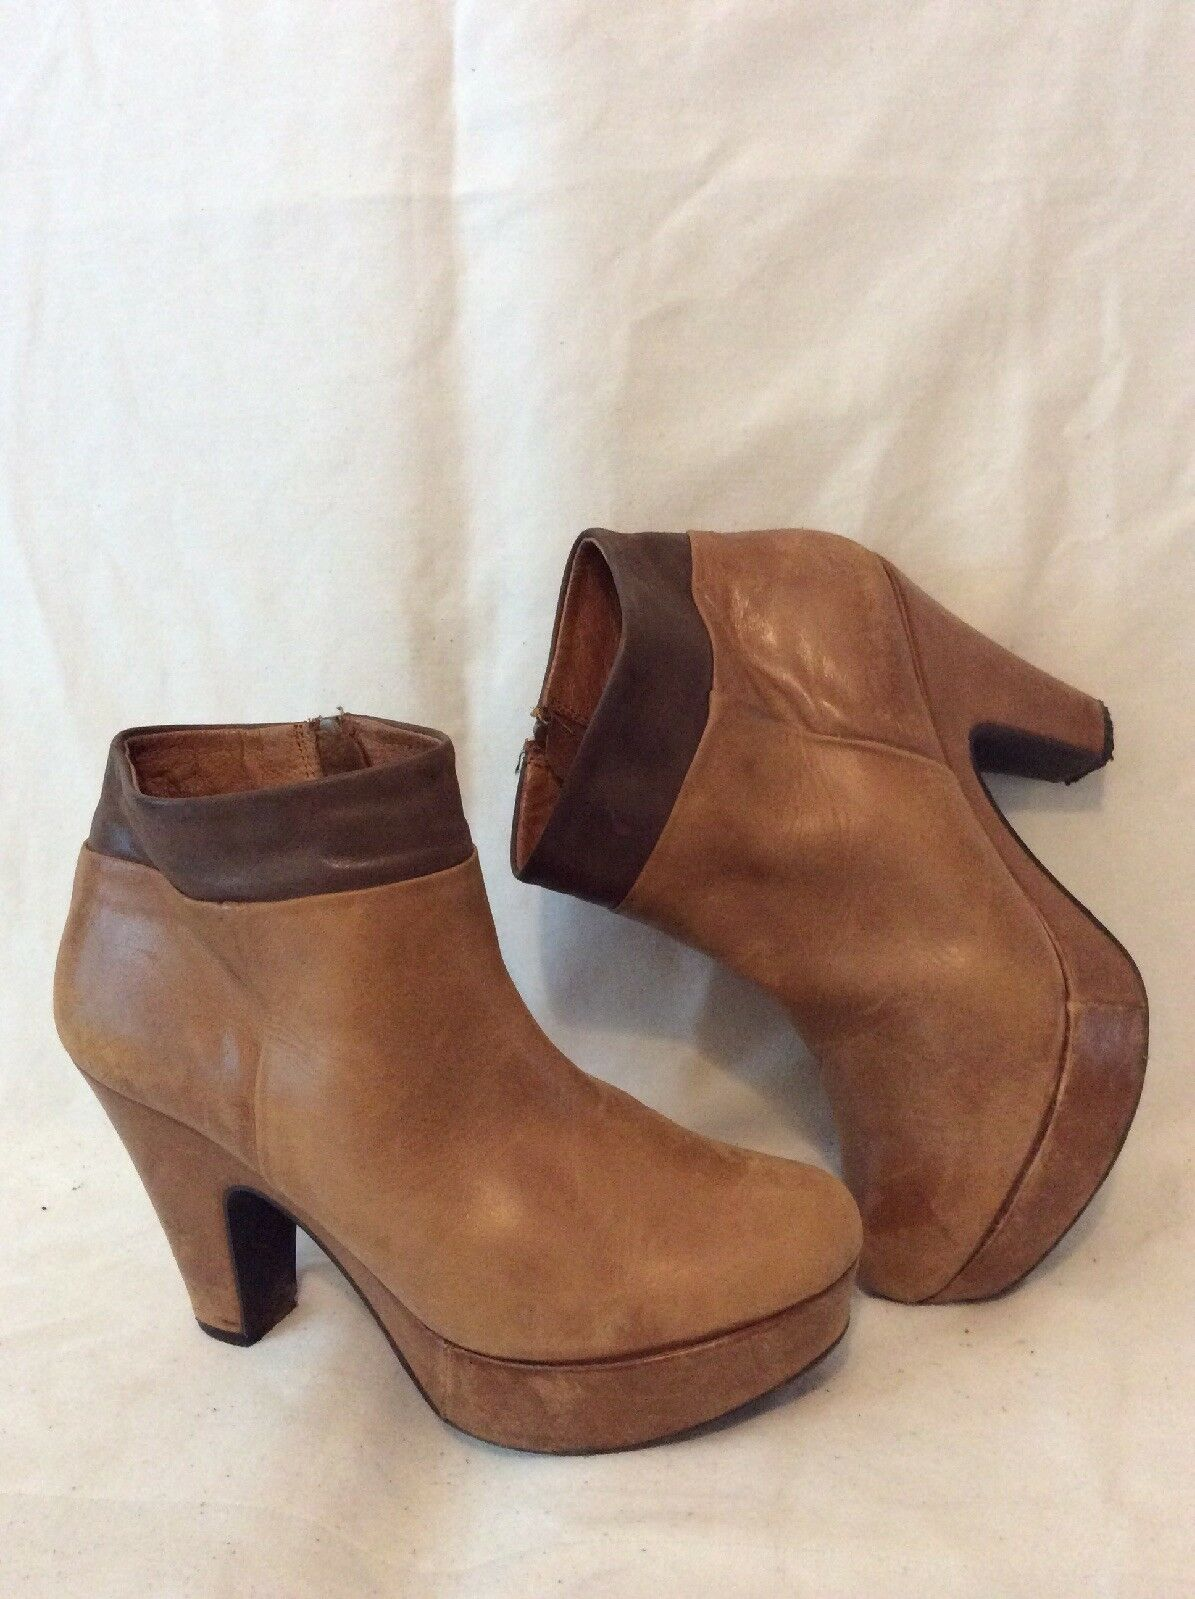 Jones Bootmaker Brown Ankle Leather Boots Size 38